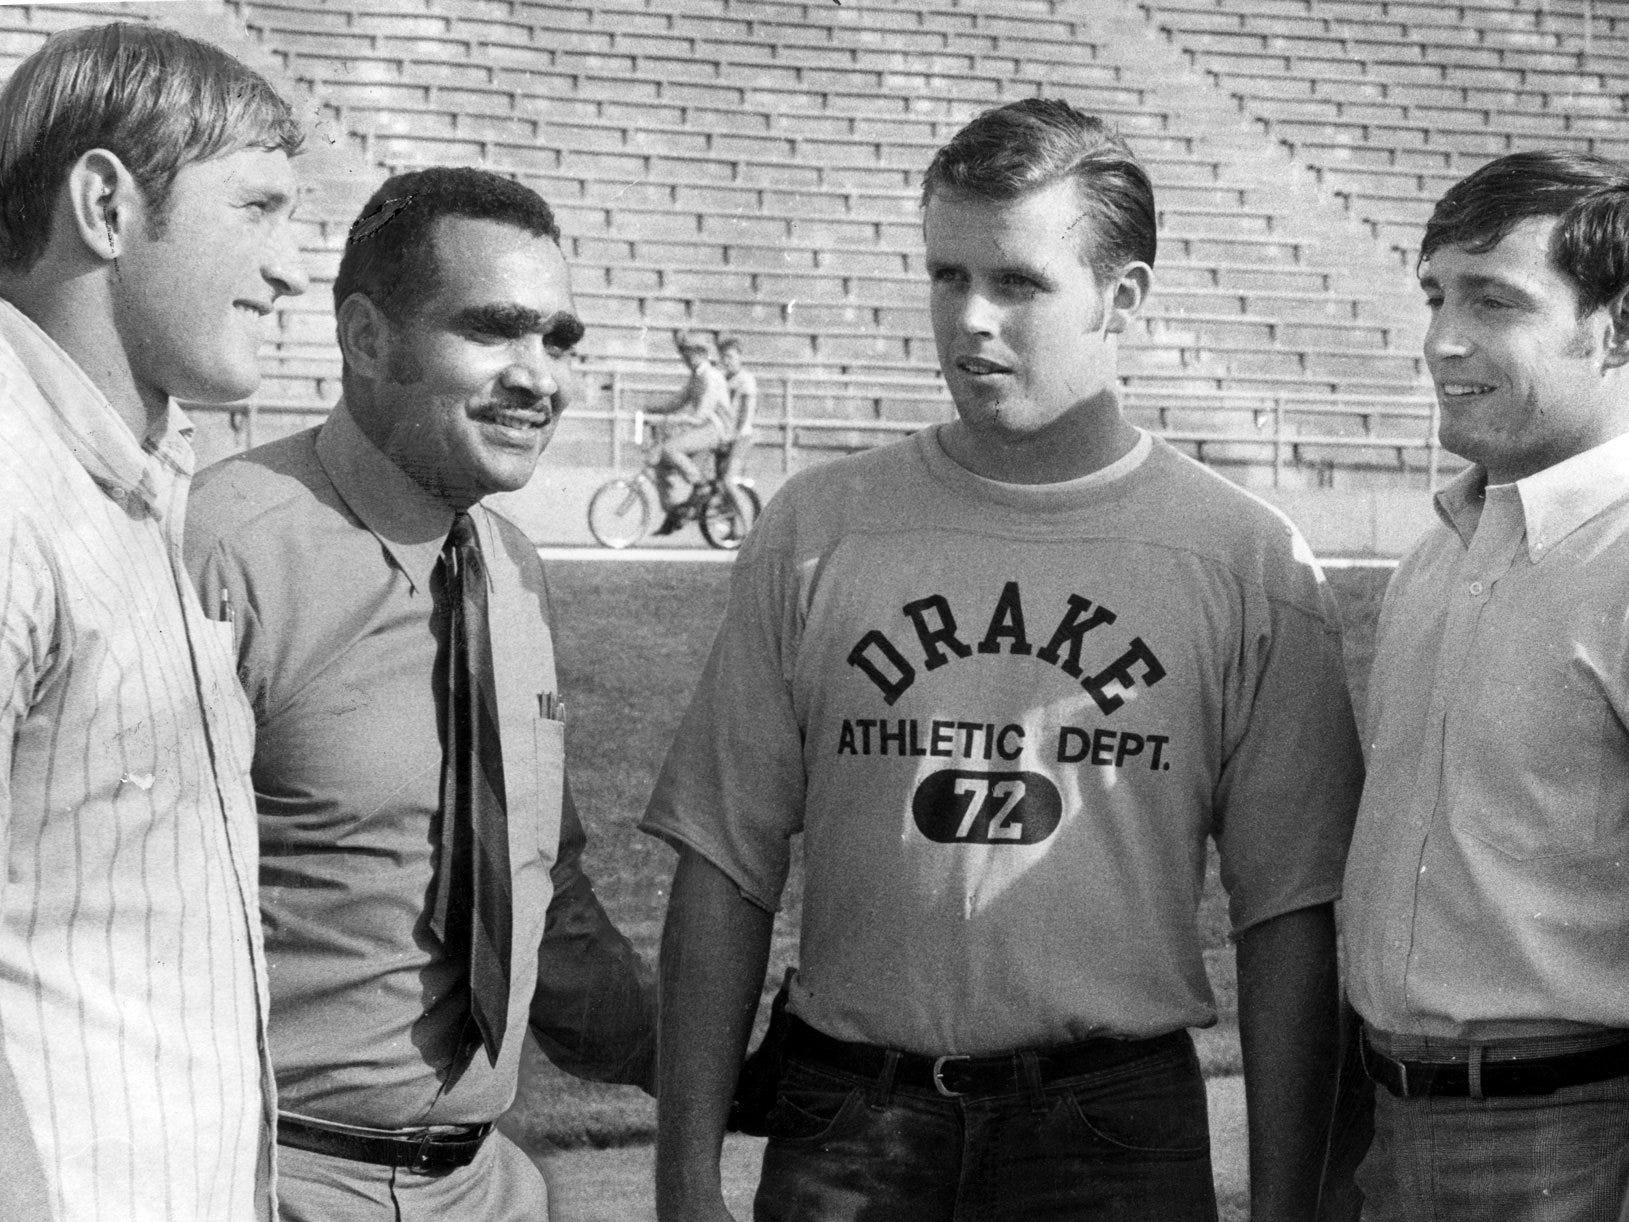 Drake University football legend Johnny Bright talks with the Bulldogs' three 1969 captains on the turf of Drake Stadium, where Bright gained fame (and record yardage) in 1949-1951. From left: defensive end John Knight, Bright, quarterback Gary McCoy and split end Duane Miller. Bright was named the greatest player in Drake's football history.